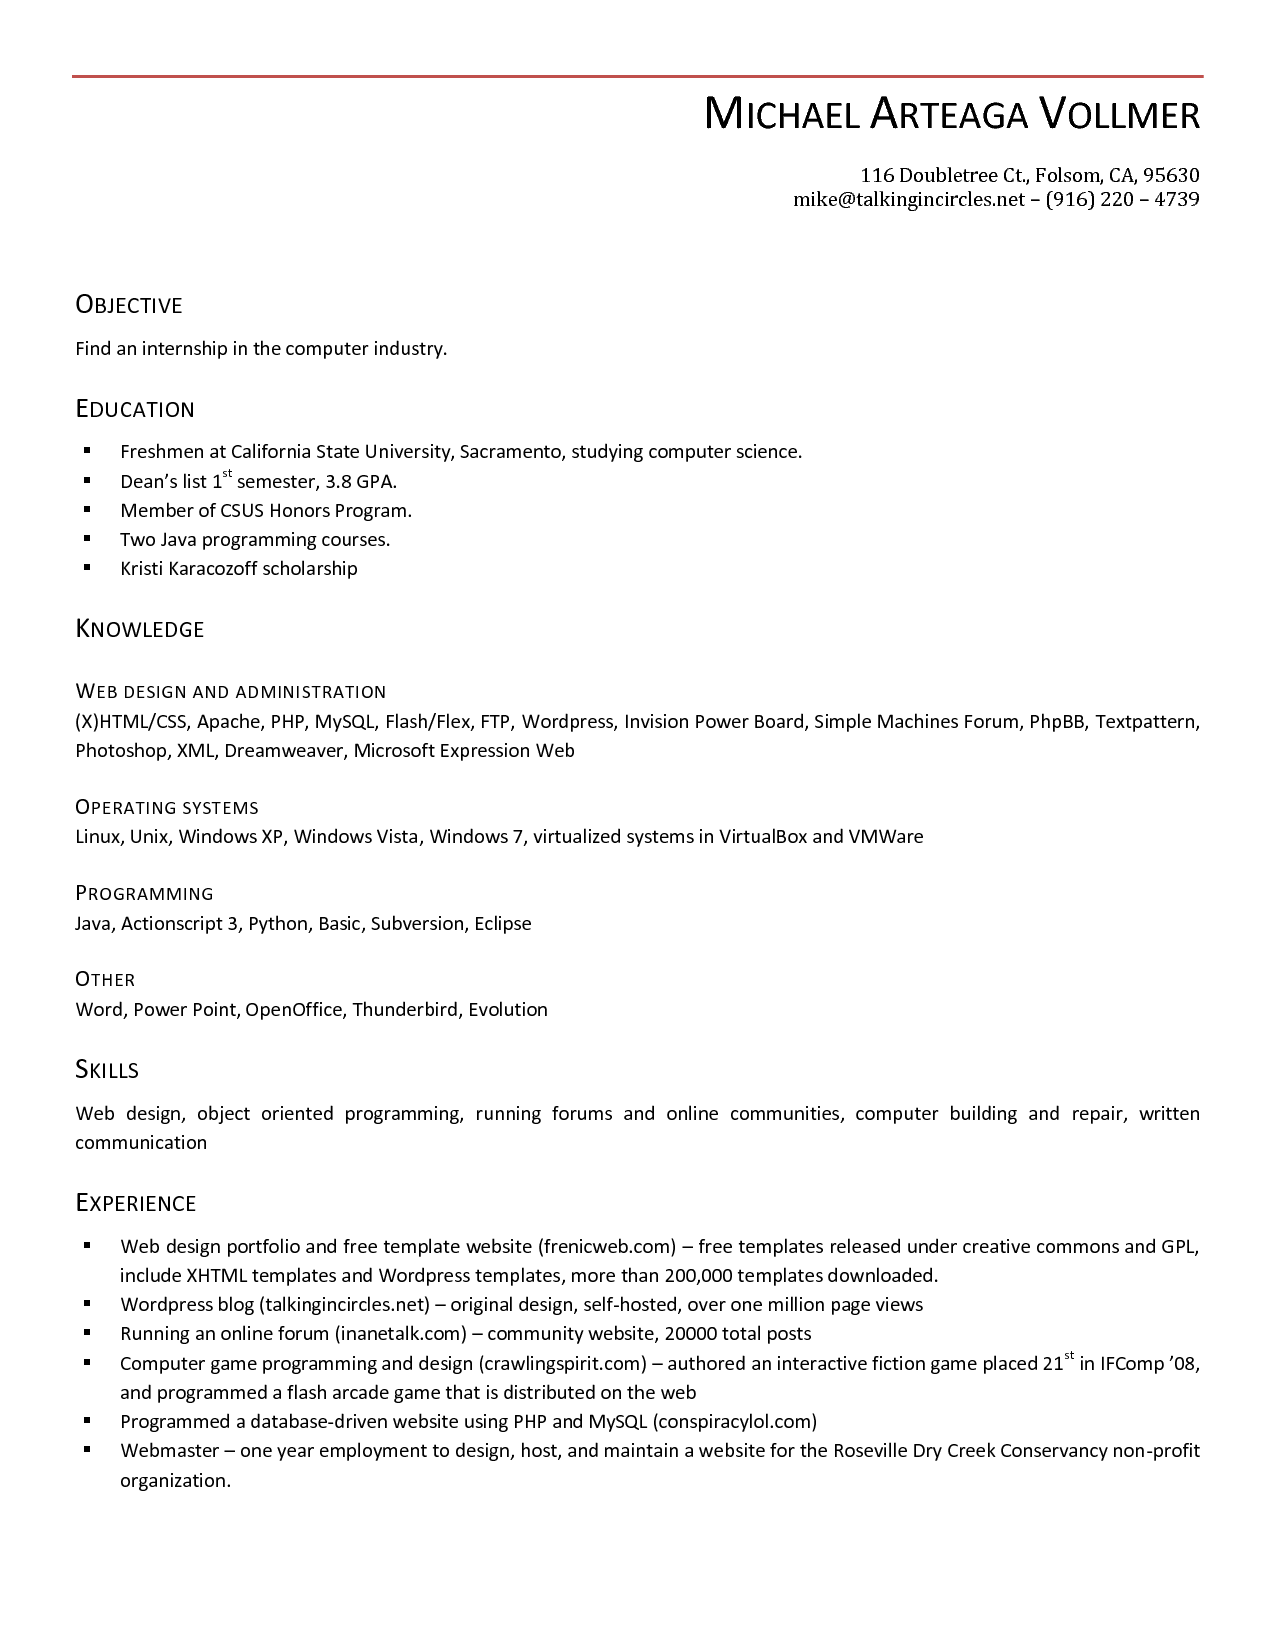 Resume templates free download for microsoft word legal template resume templates free download for microsoft word legal template best create professional resumes online simple openo yelopaper